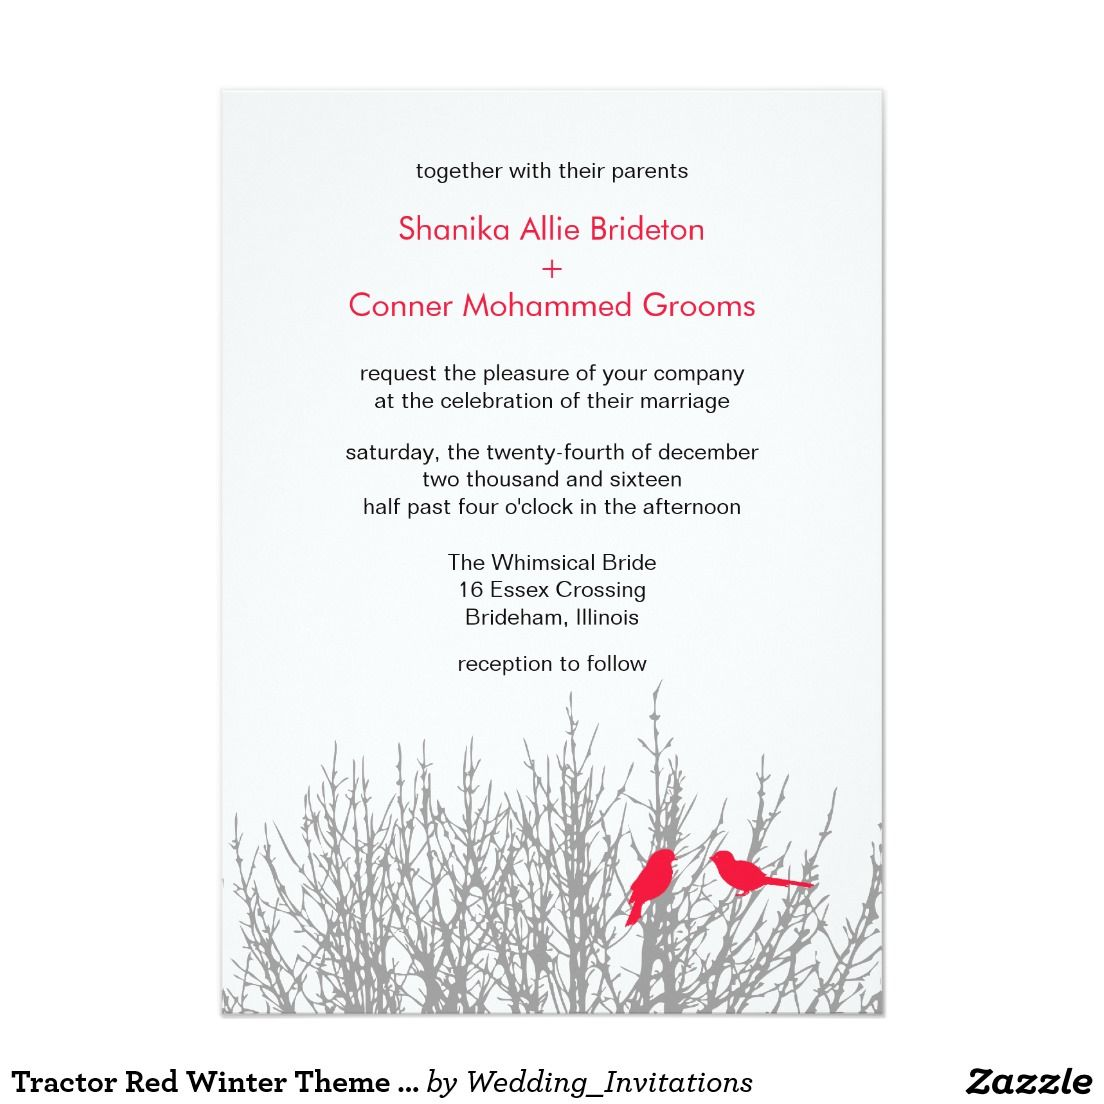 Tractor Red Winter Theme Wedding Template 5x7 Paper Invitation Card ...